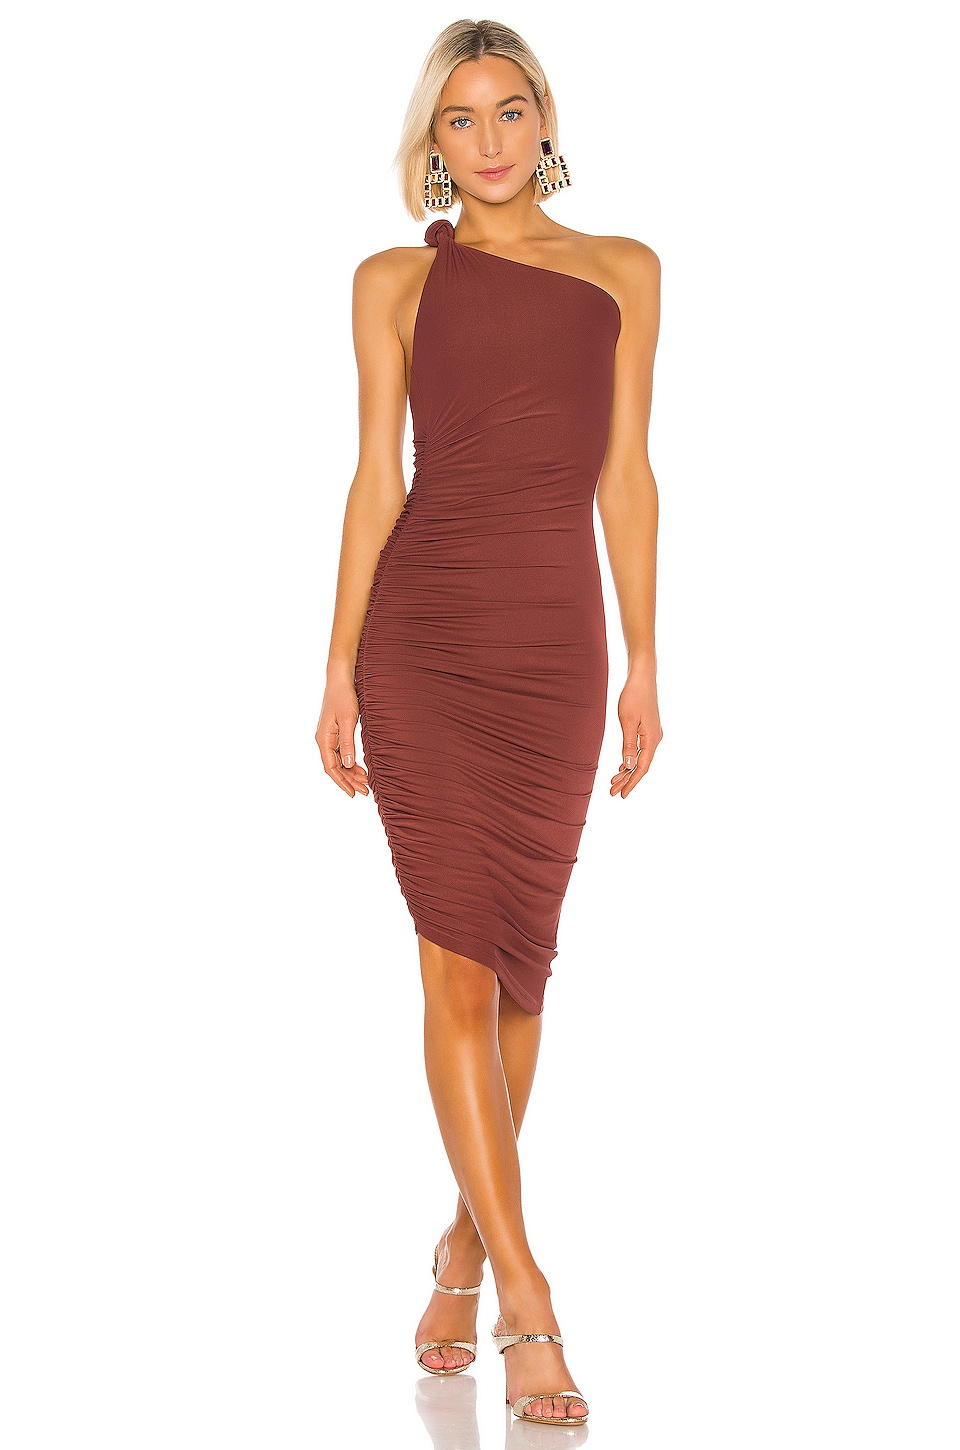 ALIX NYC Celeste Dress in Cinnamon